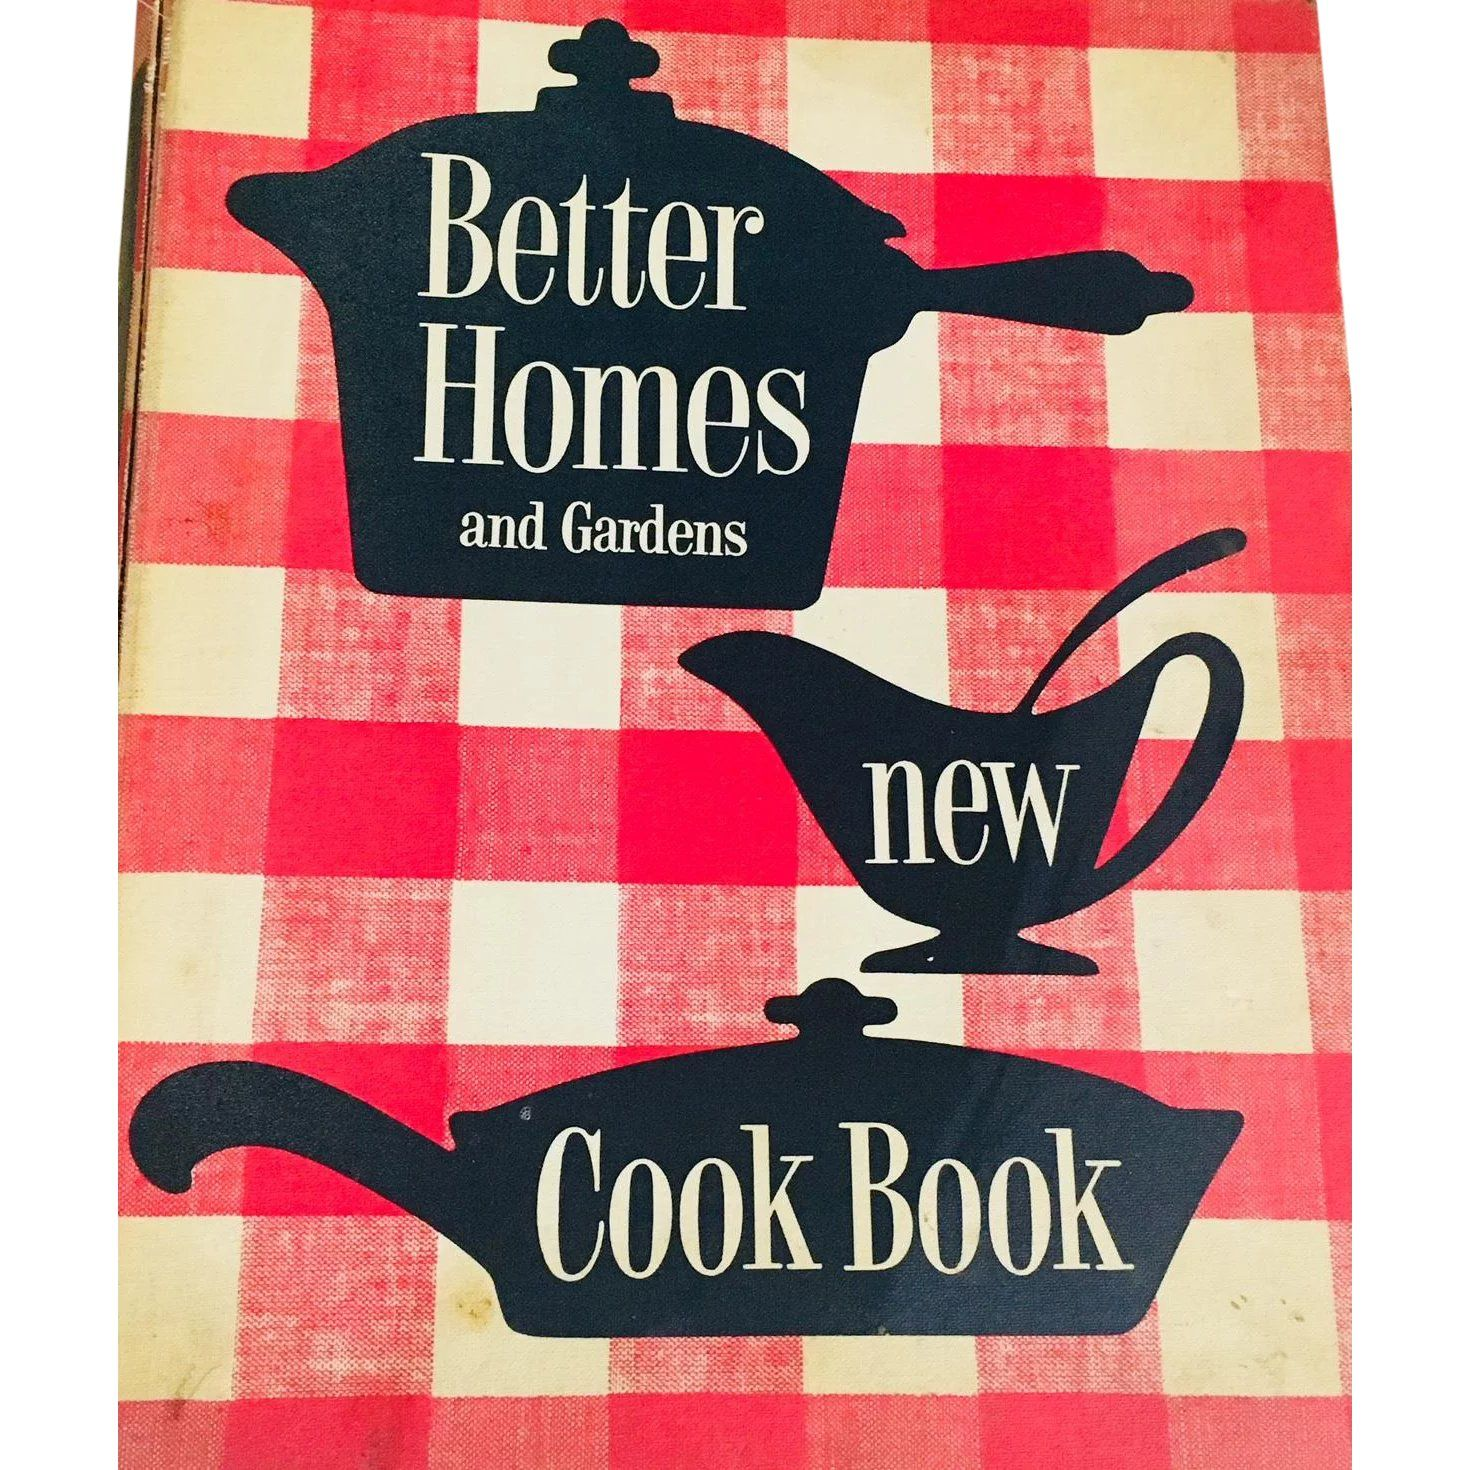 3ae881e0f628dda01f5558aab790aed1 - Better Homes & Gardens New Cook Book